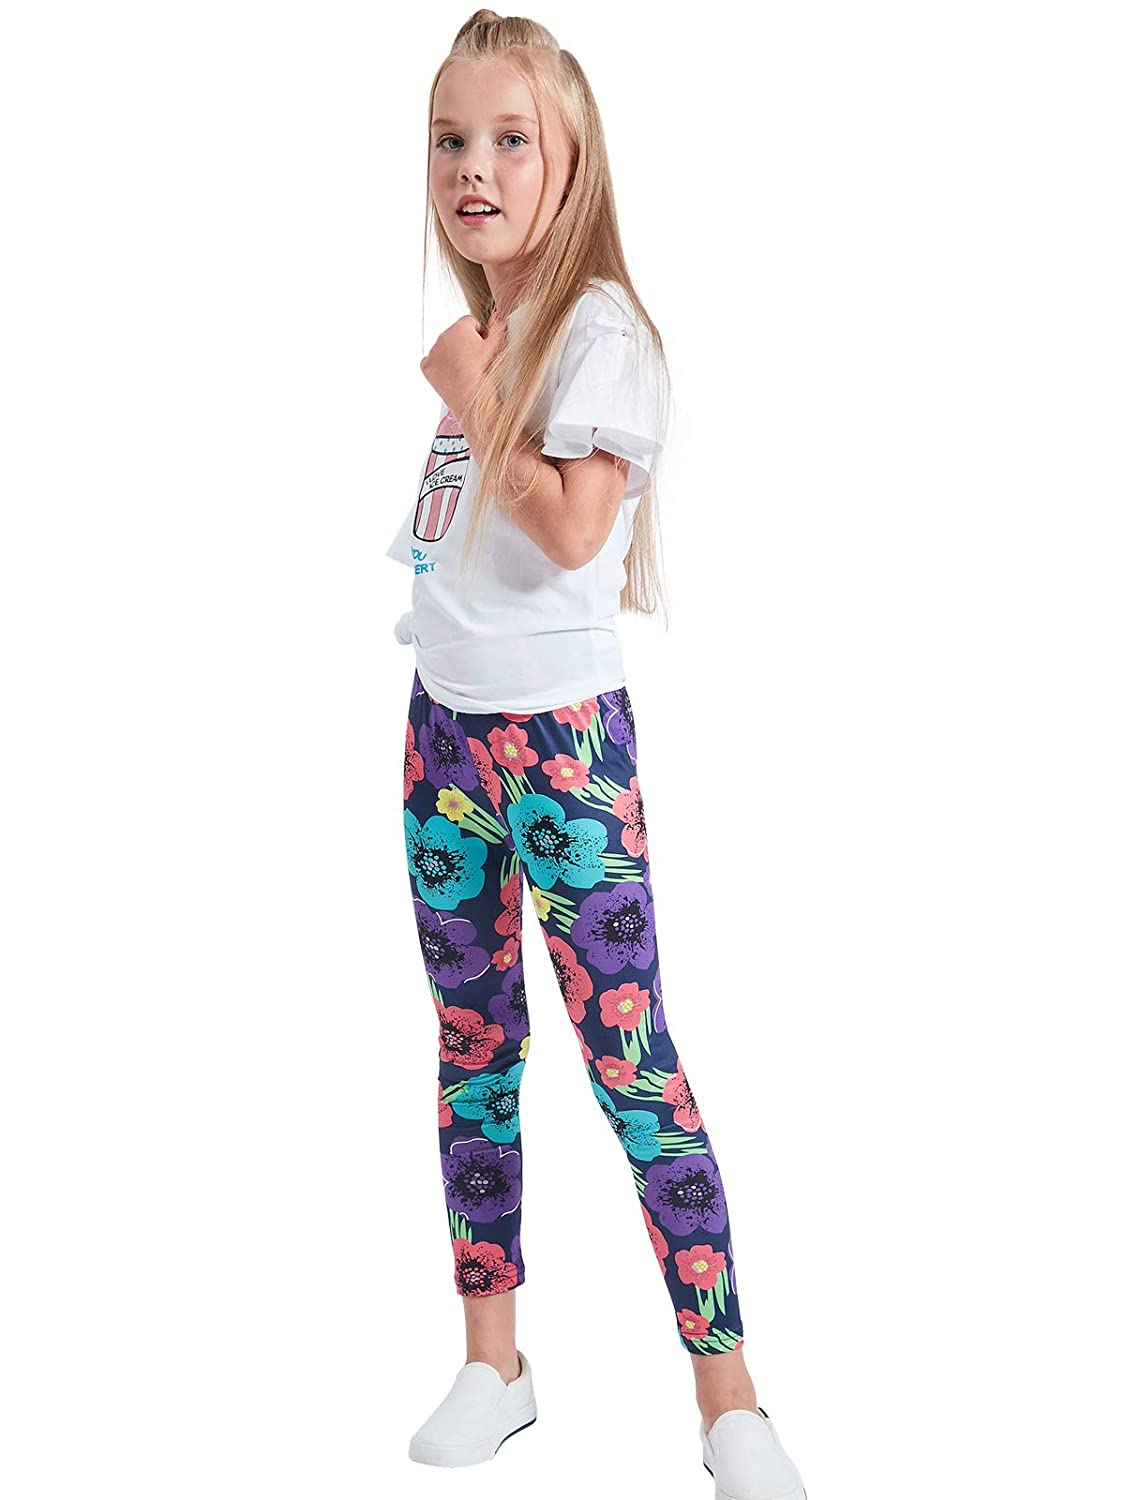 84391c1aa76fb Amazon.com: iLover Girls Stretch Leggings Tights Kids Pants Plain Full  Length Children Trousers, Age 4-13 Years: Clothing